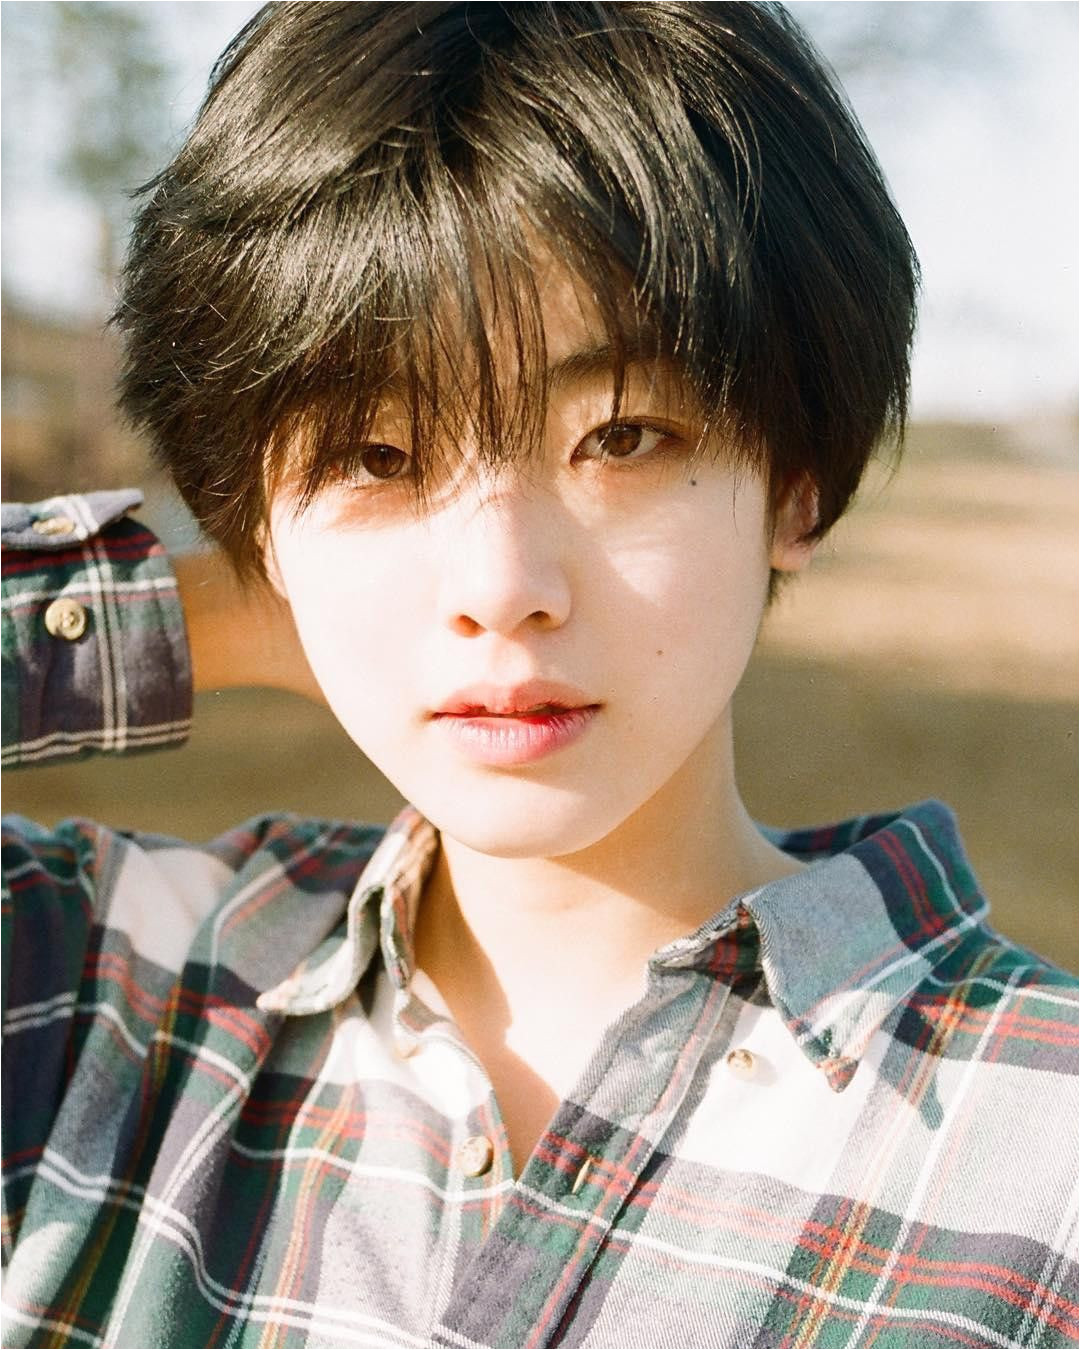 Hairstyle for asian Hair Male Beautiful tomboy Haircut 0d tomboy